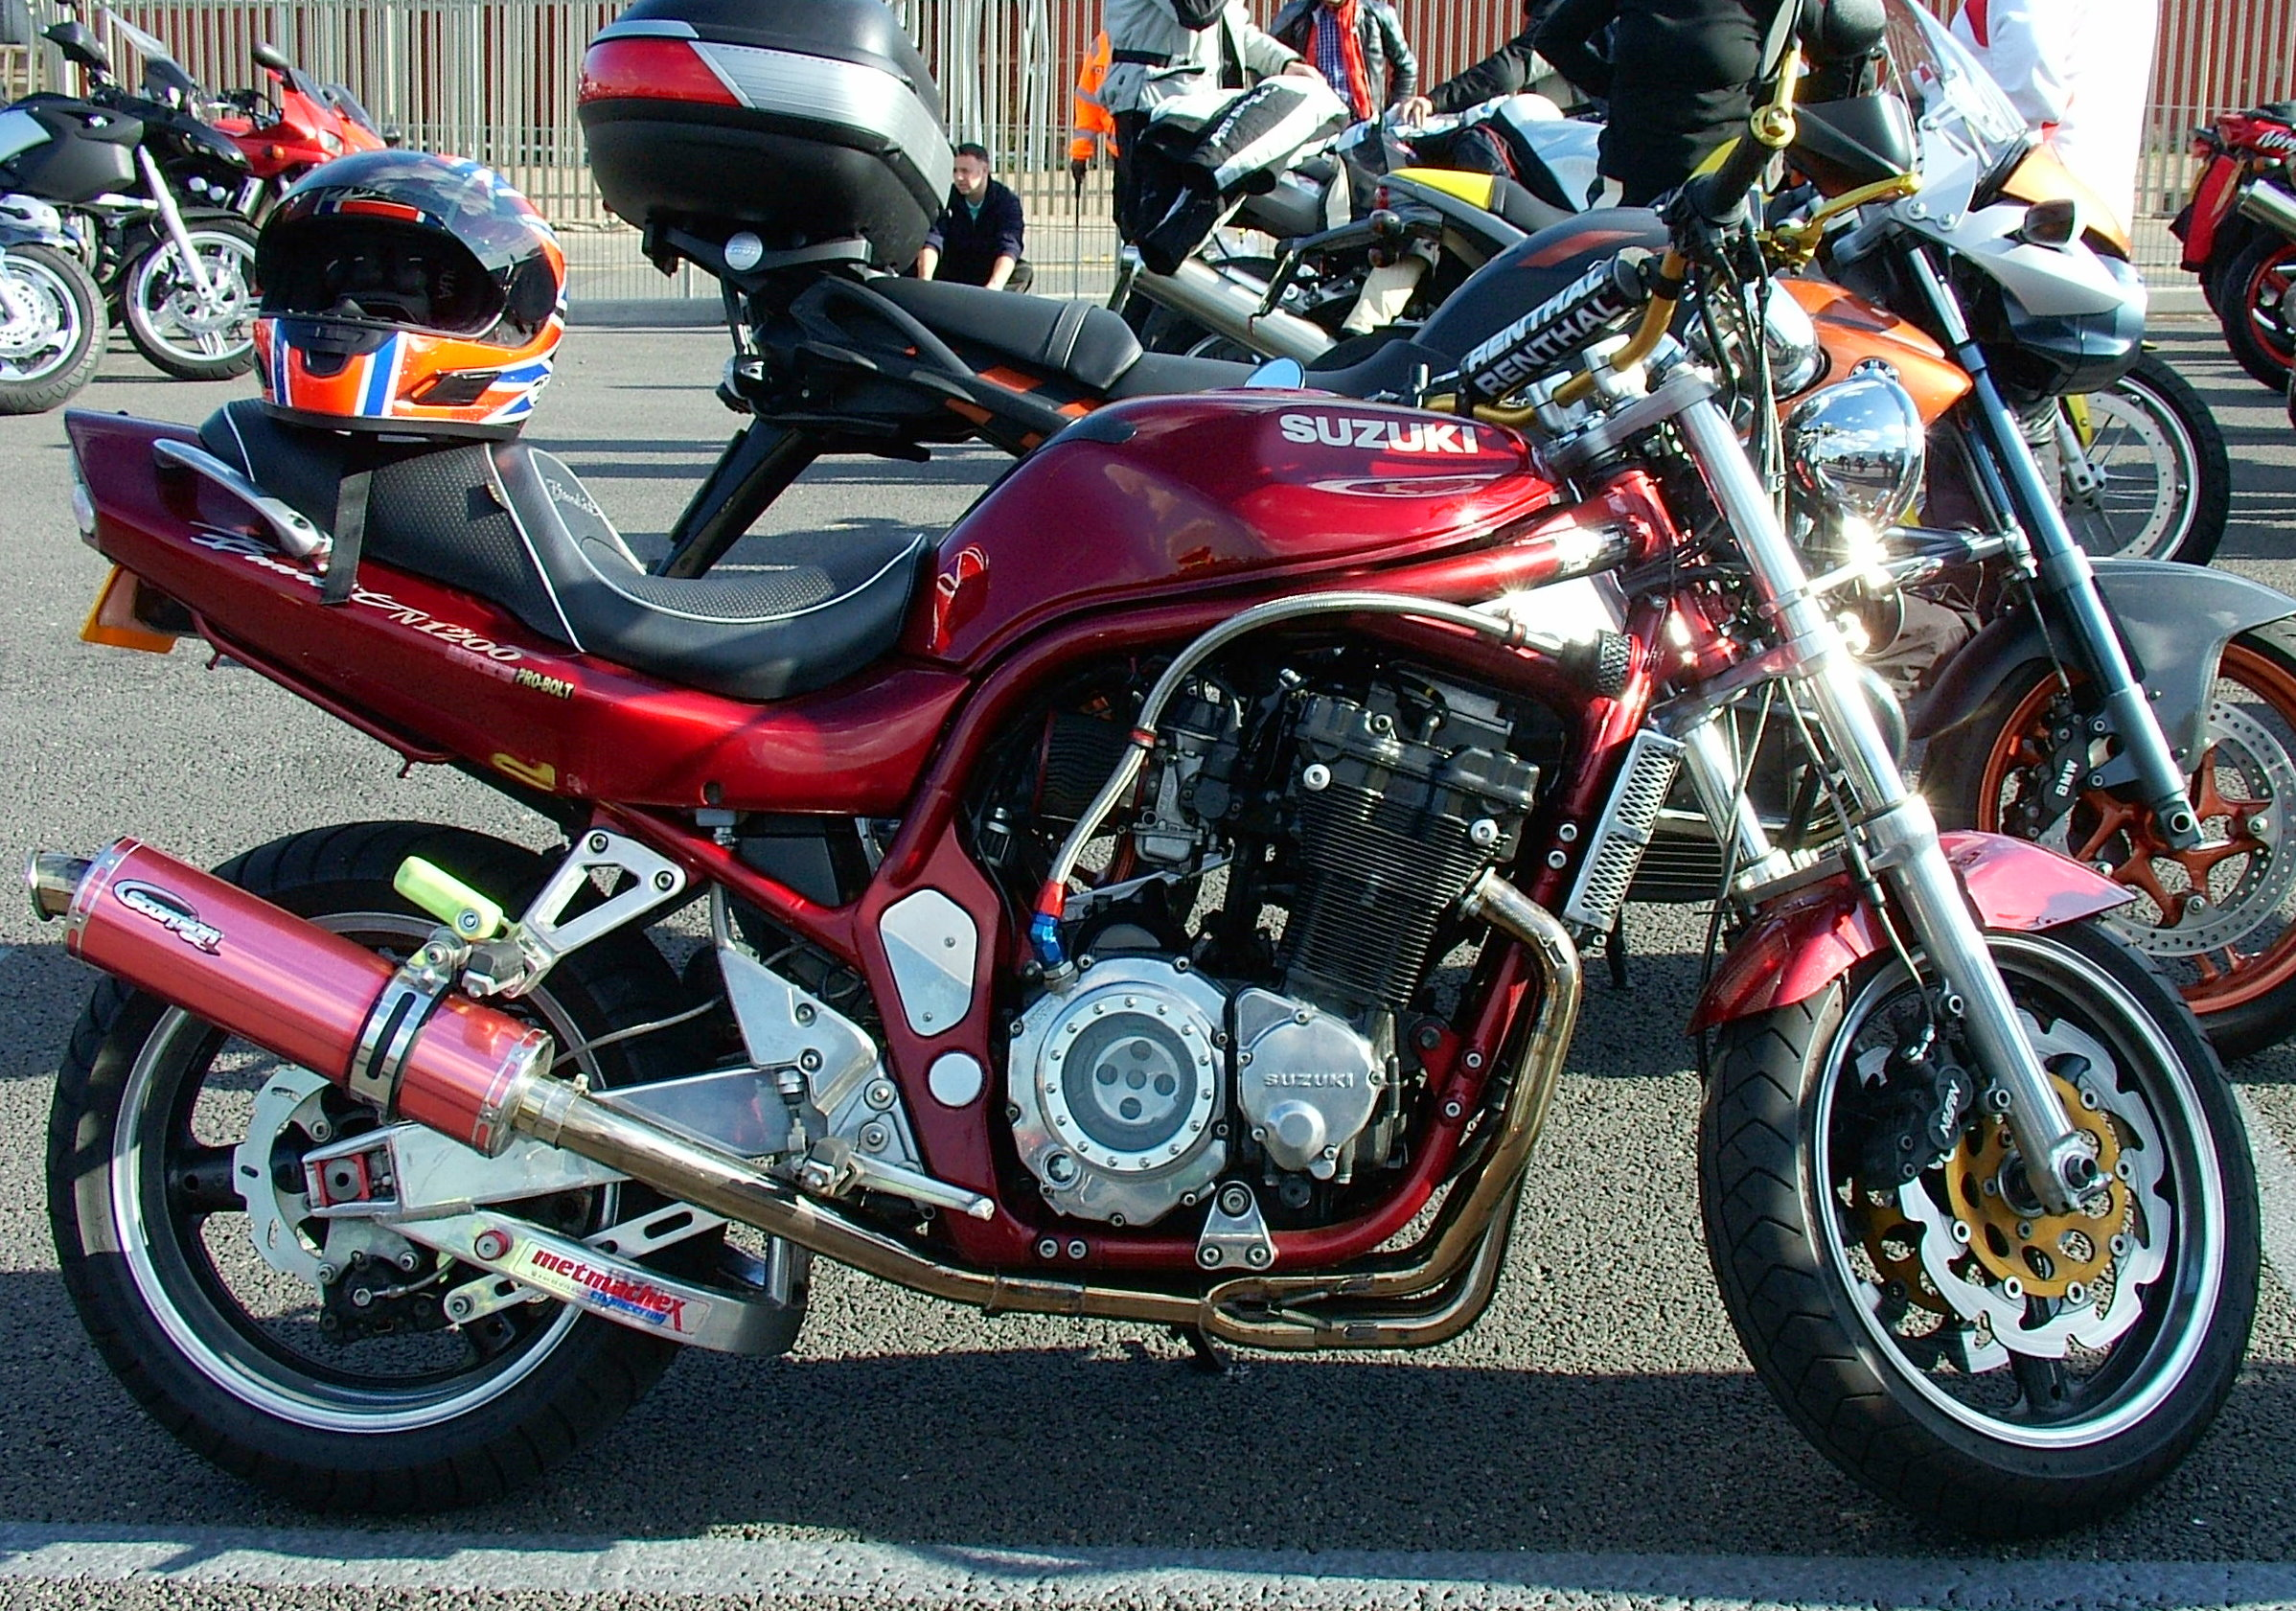 File:Suzuki streetfighter motorcycle.jpg